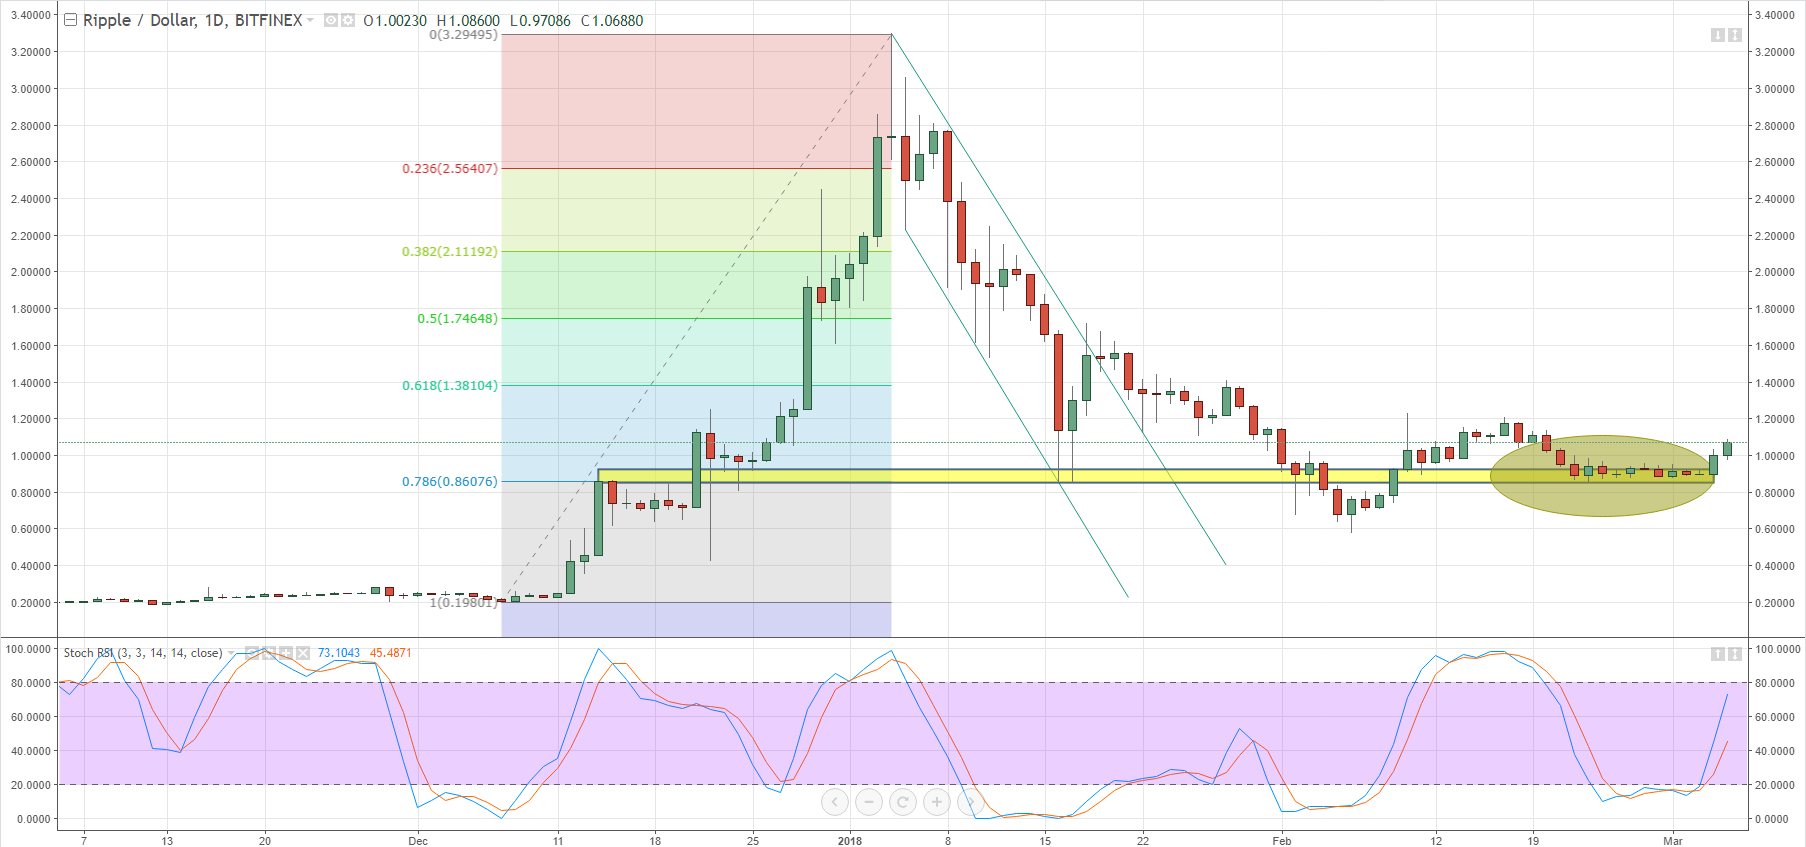 Ripple Price Chart Daily Time Frame November 2017 March 5 2018